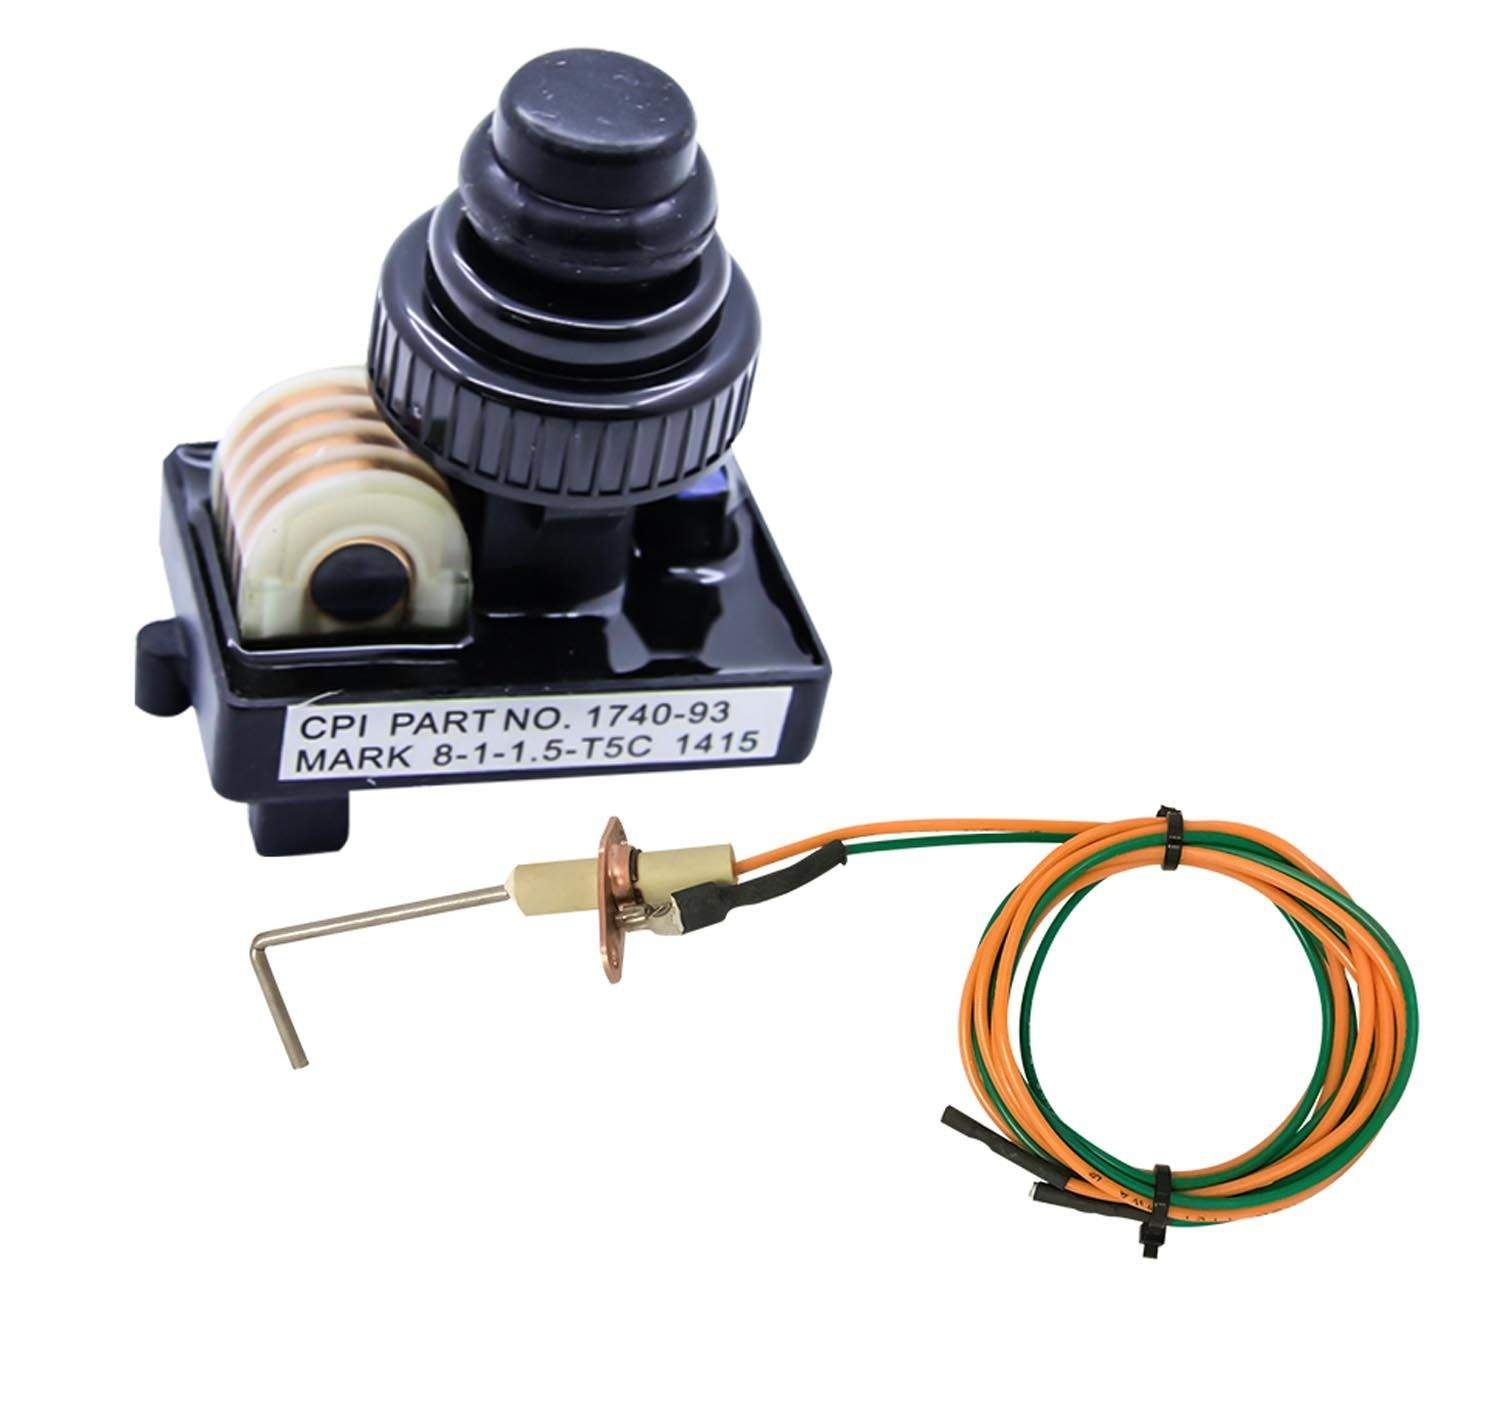 Hearth Products Controls Dexen Electronic Ignition Valve Wiring Harness Product 350 H Hpc Indoor